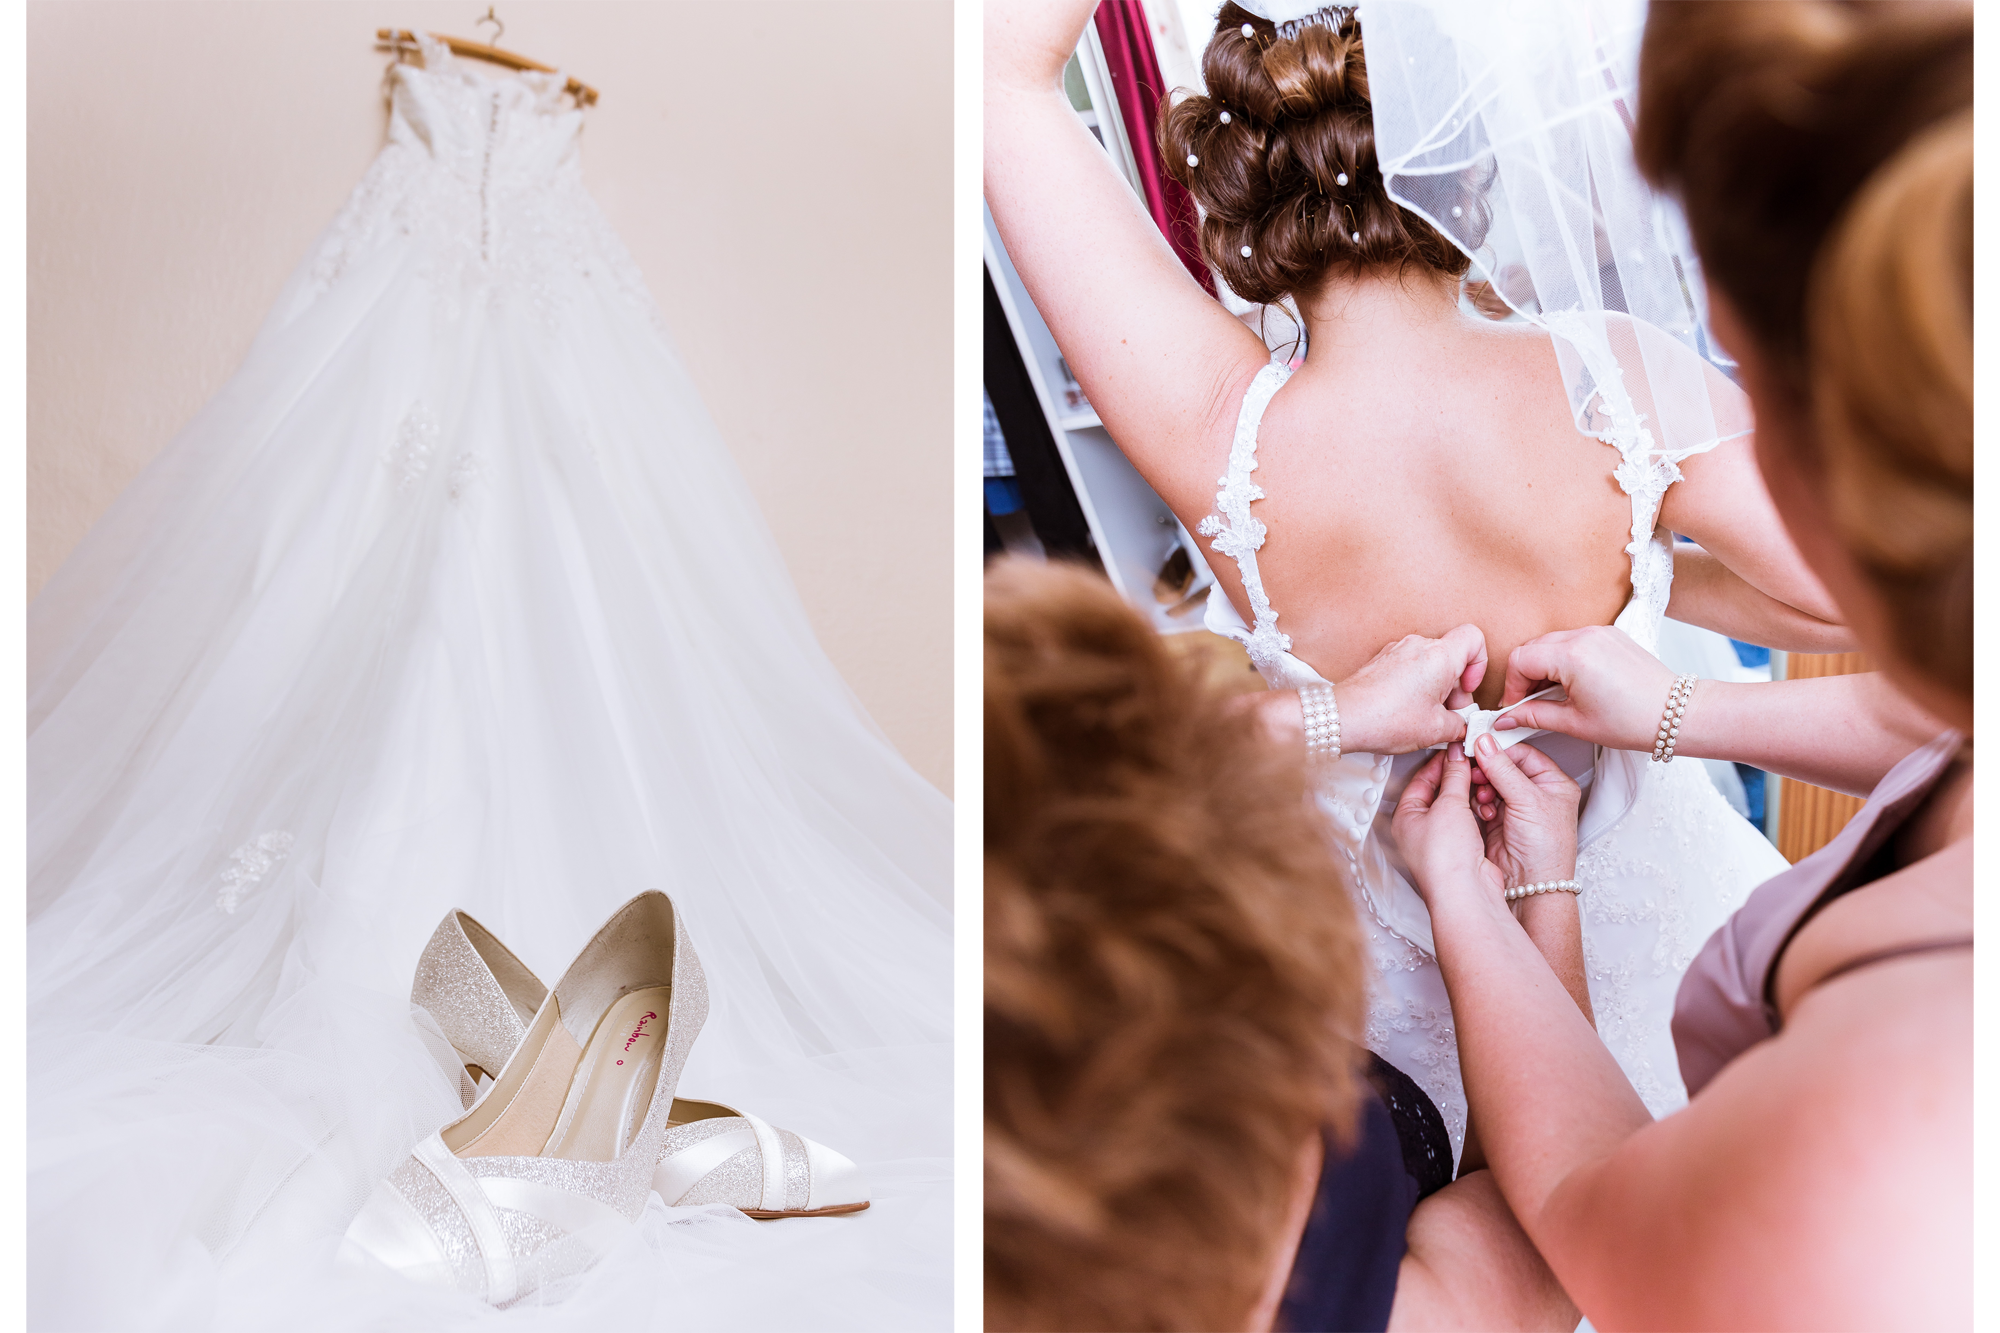 An image of a wedding dress, and the bridesmaid and mother of the bride putting on sarah's dress